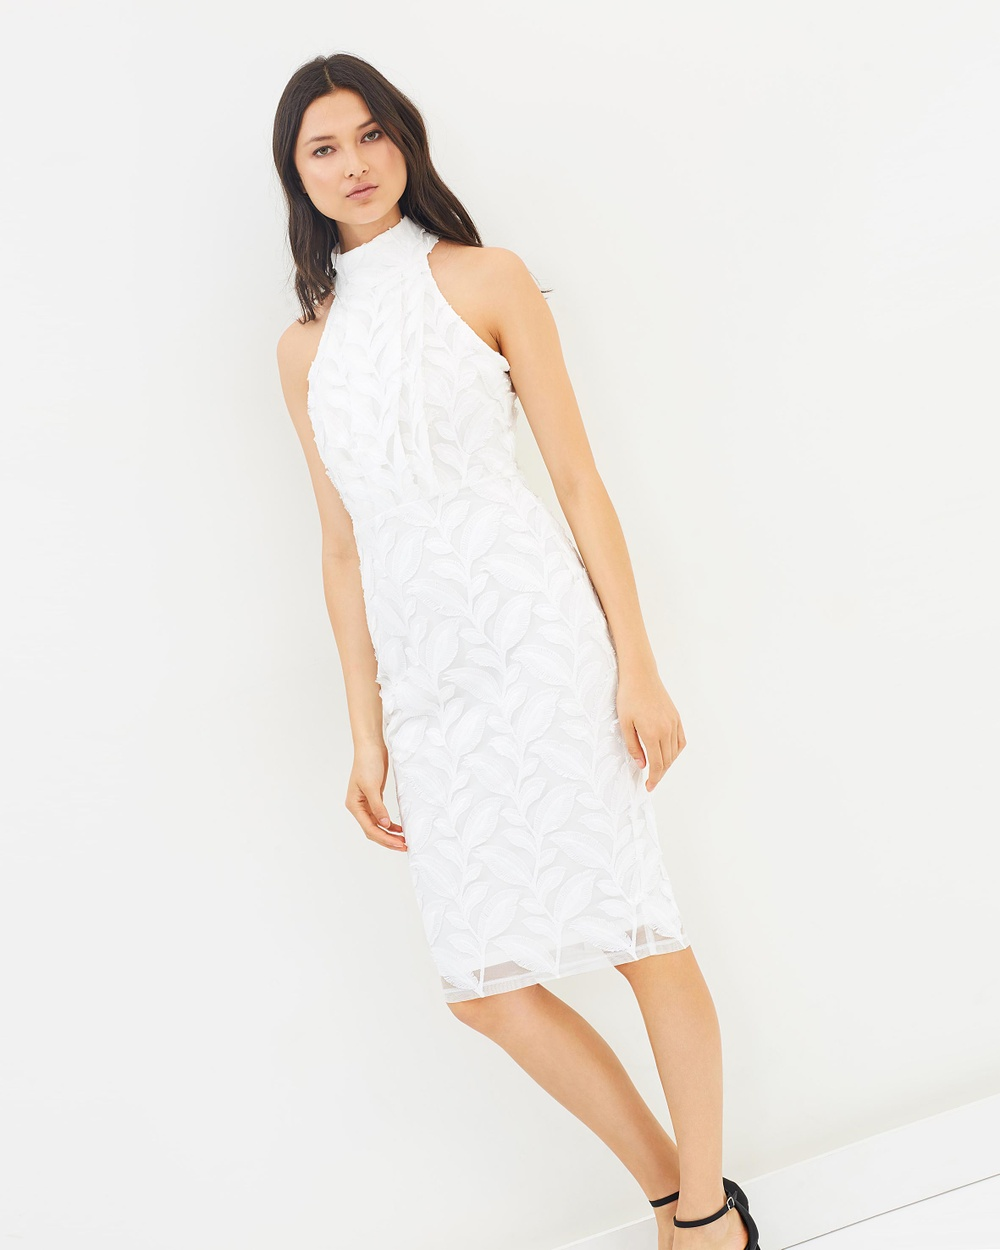 Airlie Delicate Leaf Lace Dress Dresses White Delicate Leaf Lace Dress